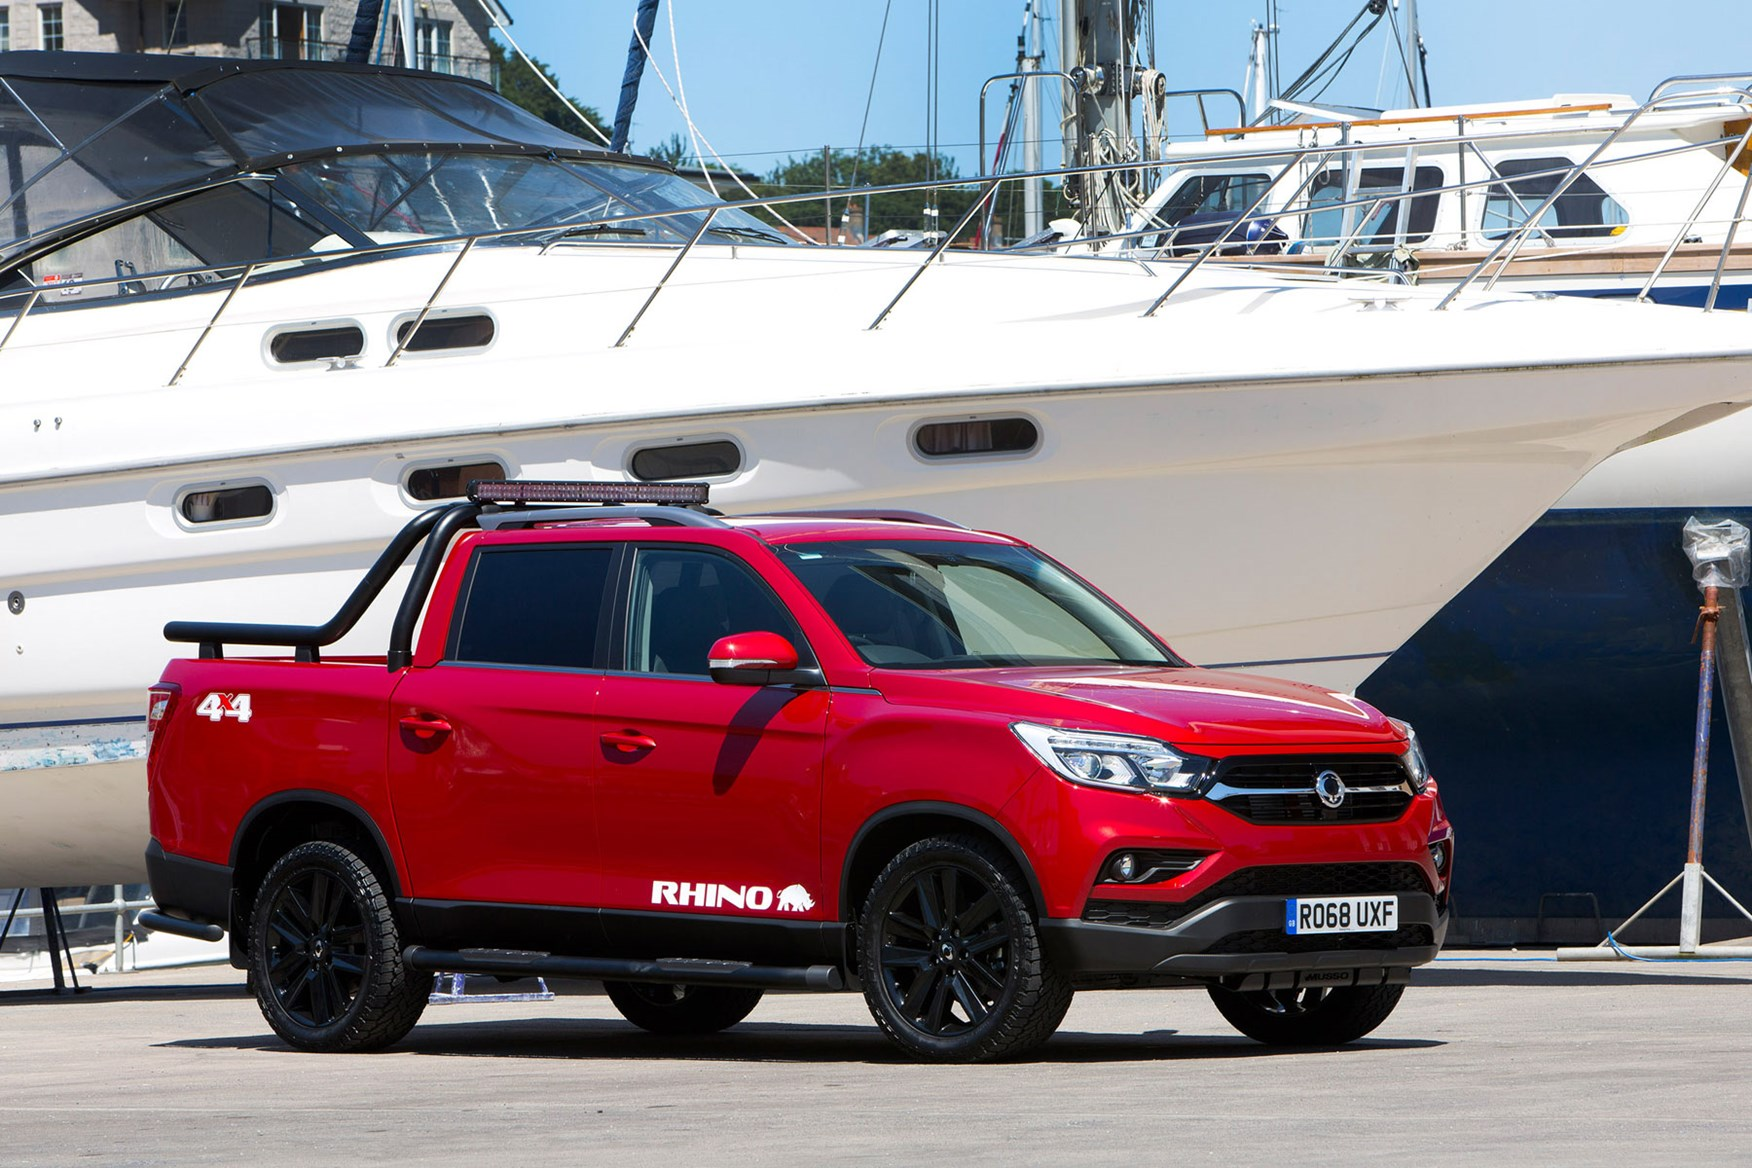 SsangYong Musso (2018-on) review, Rhino, front view, red